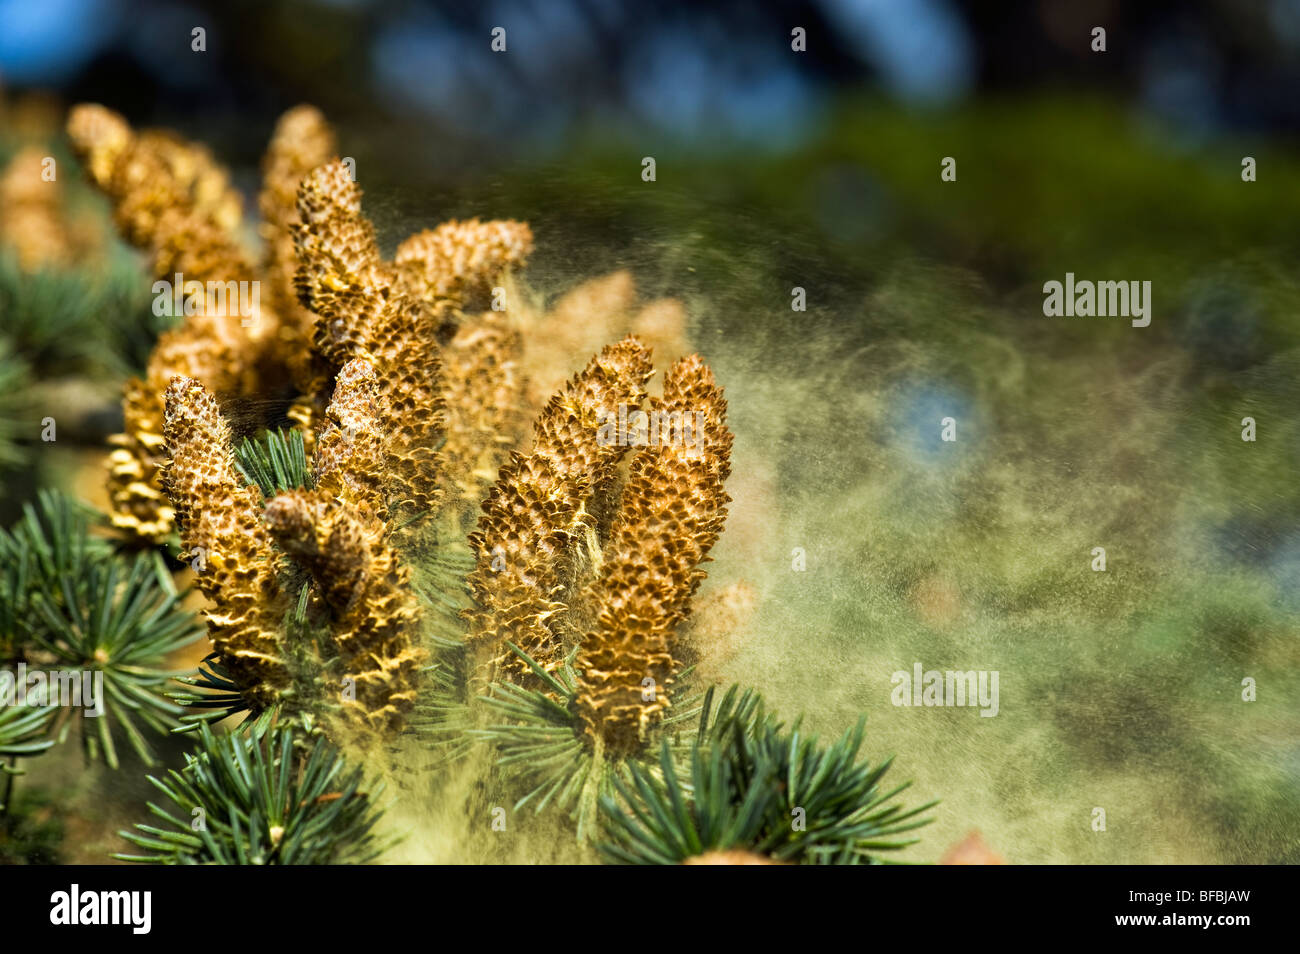 conifer coniferous tree pollen dispersal dispers pine  fir cone fircone flower flourish bloom blooming cones cone - Stock Image